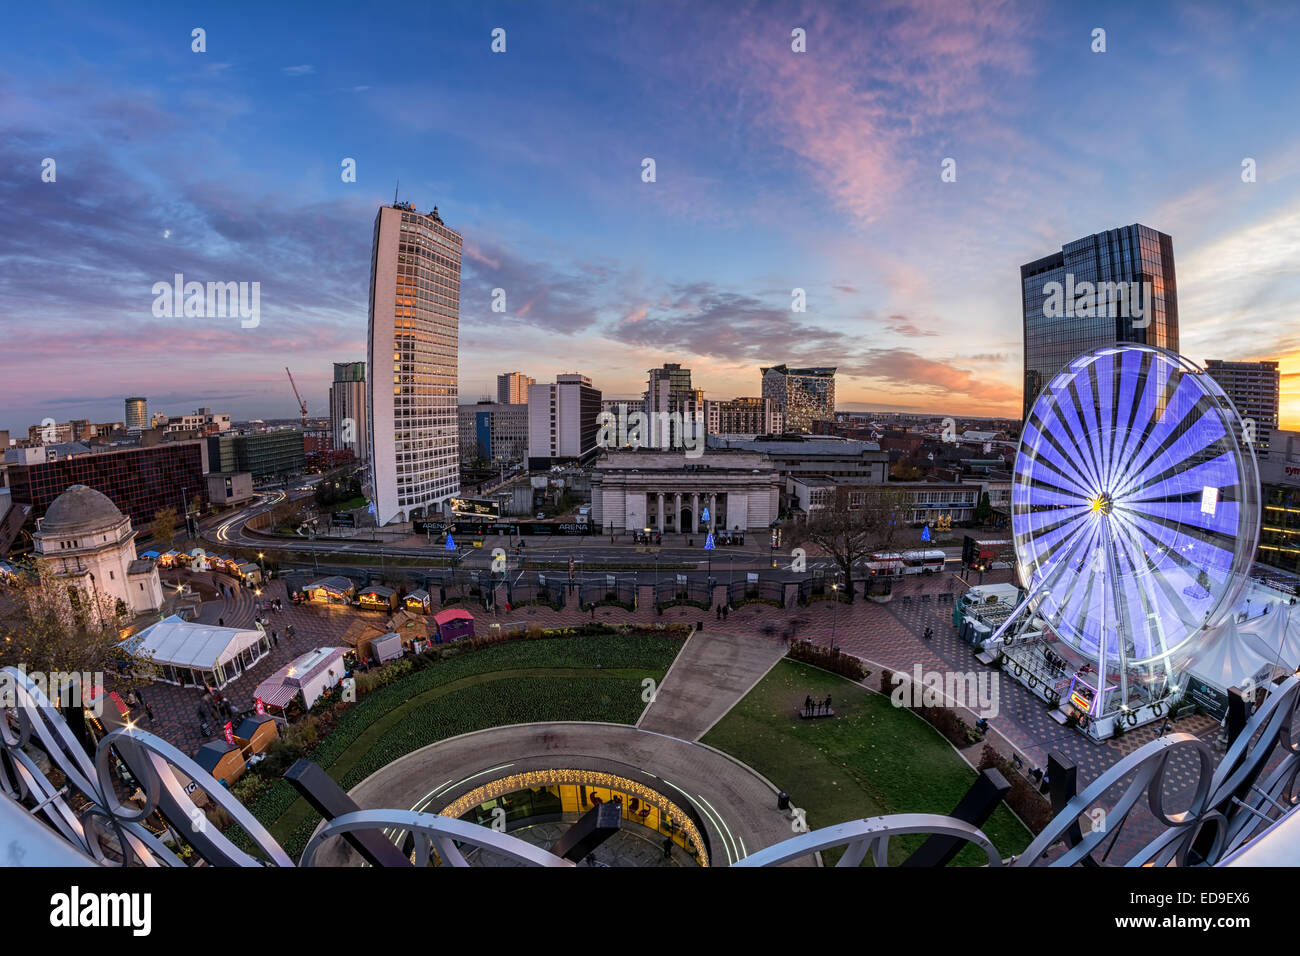 Fisheye view from Birmingham's new library, looking out across the tail end of the German market. Stock Photo